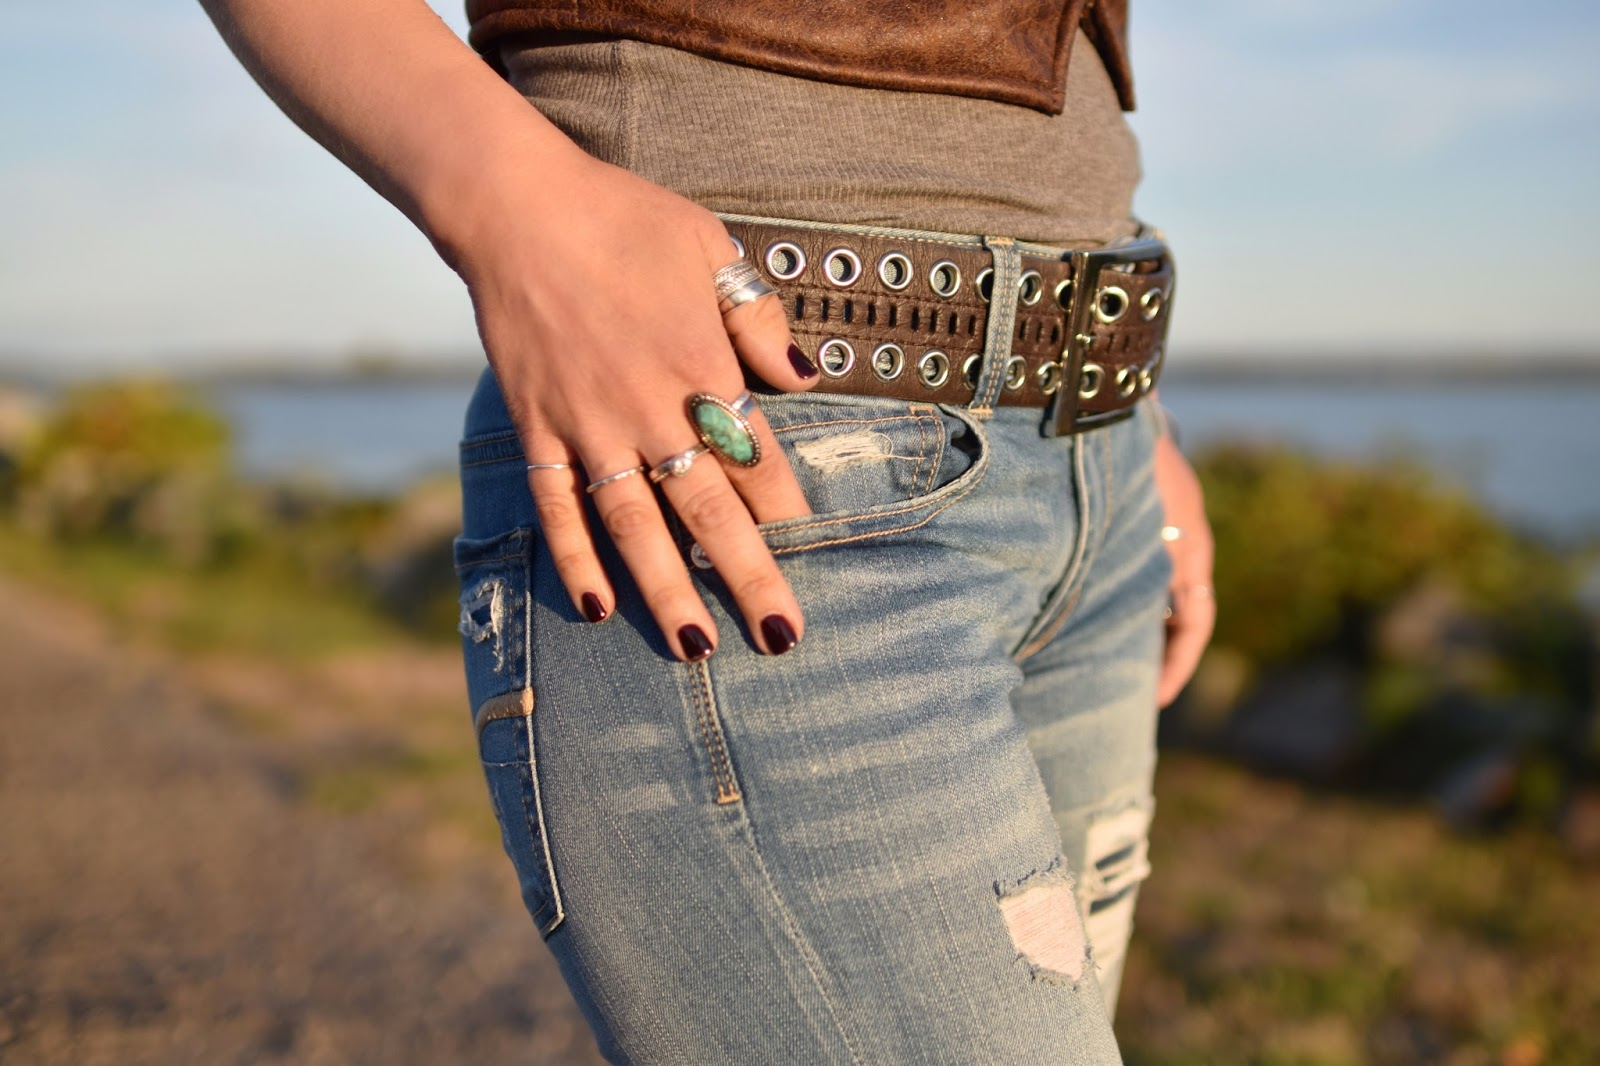 Monika Faulkner outfit inspiration - distressed jeans, grommet-embellished belt, stacked rings